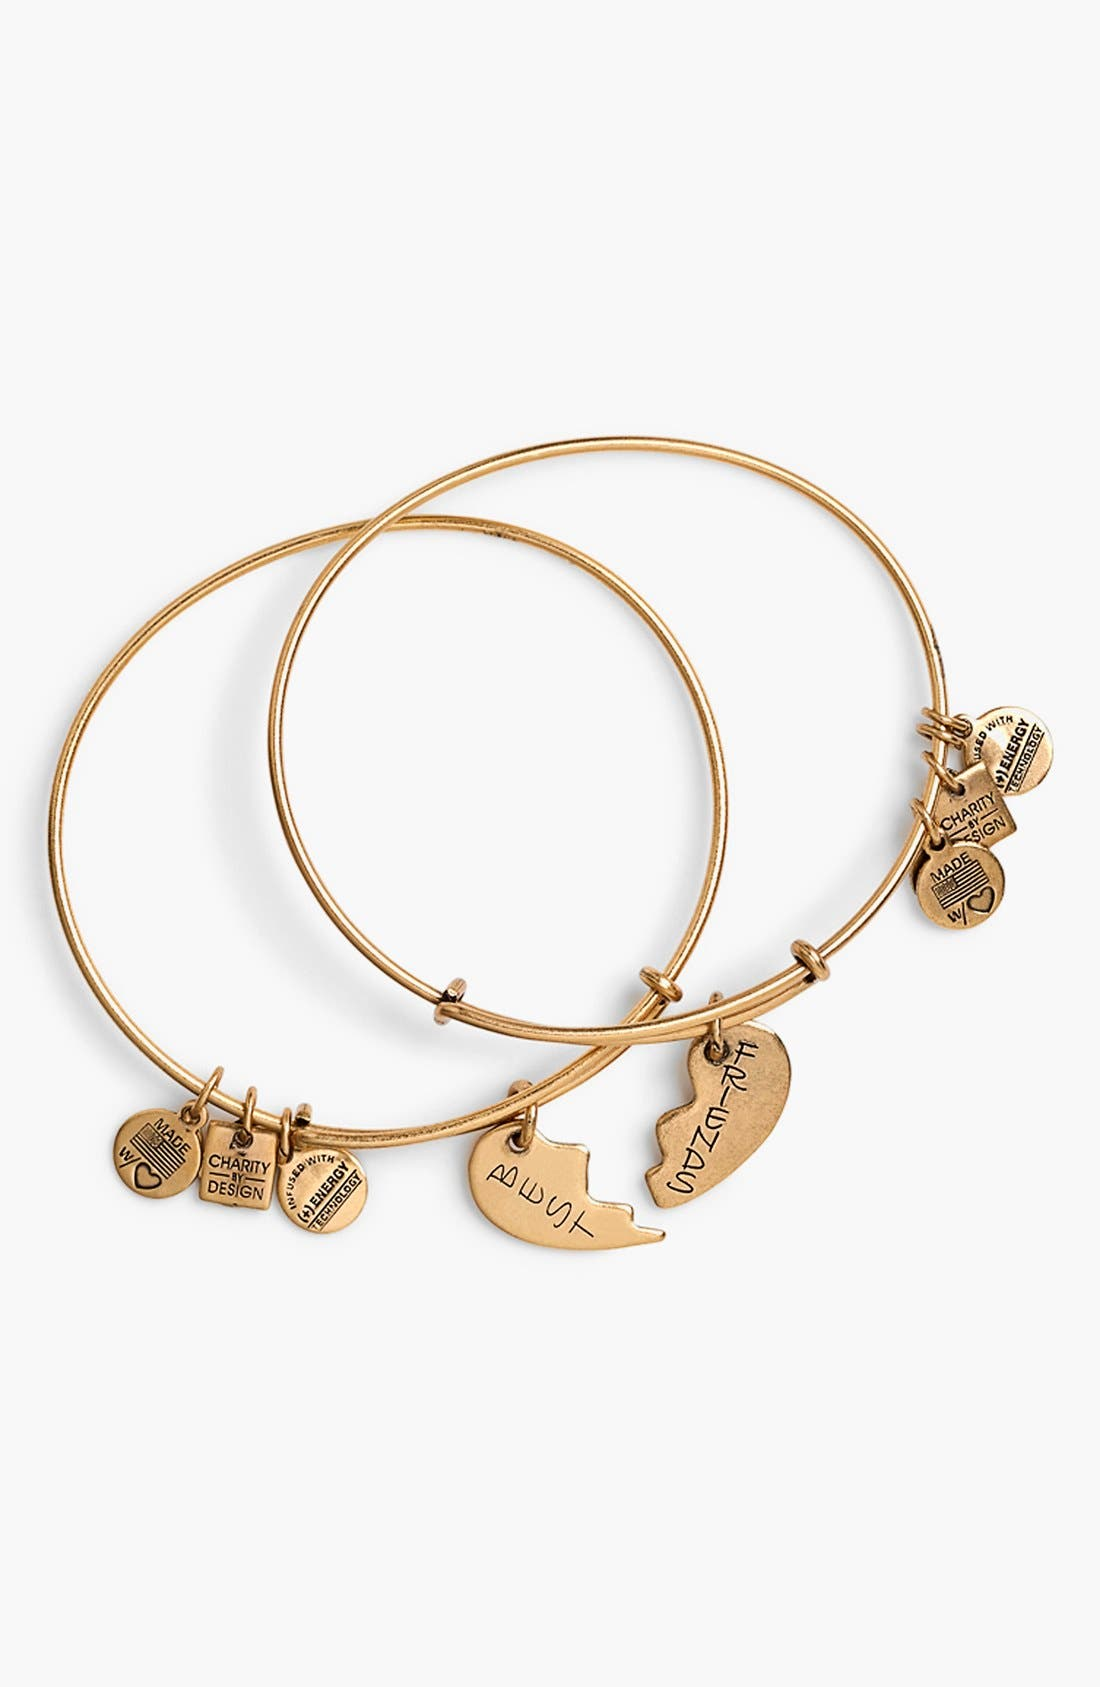 Alternate Image 1 Selected - Alex and Ani 'Charity by Design - Best Friends' Adjustable Wire Bangles (Set of 2)